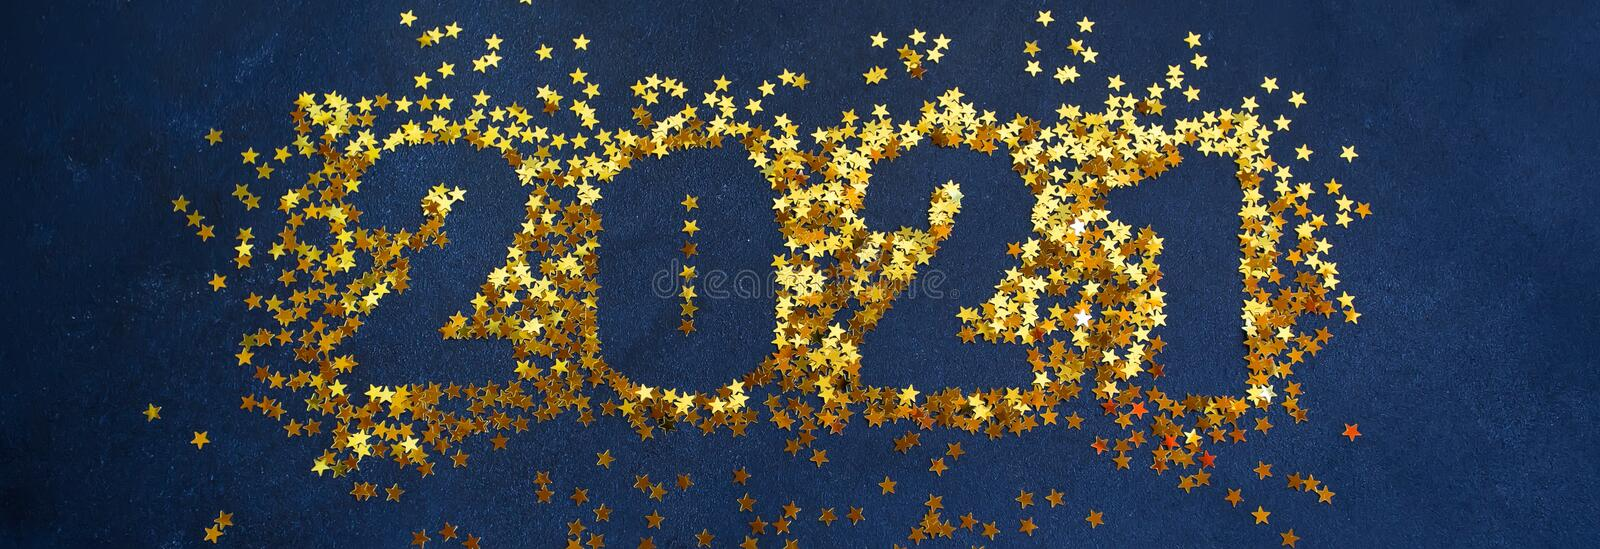 Happy New Year 2021. Sparkling Stars On Black Background ...